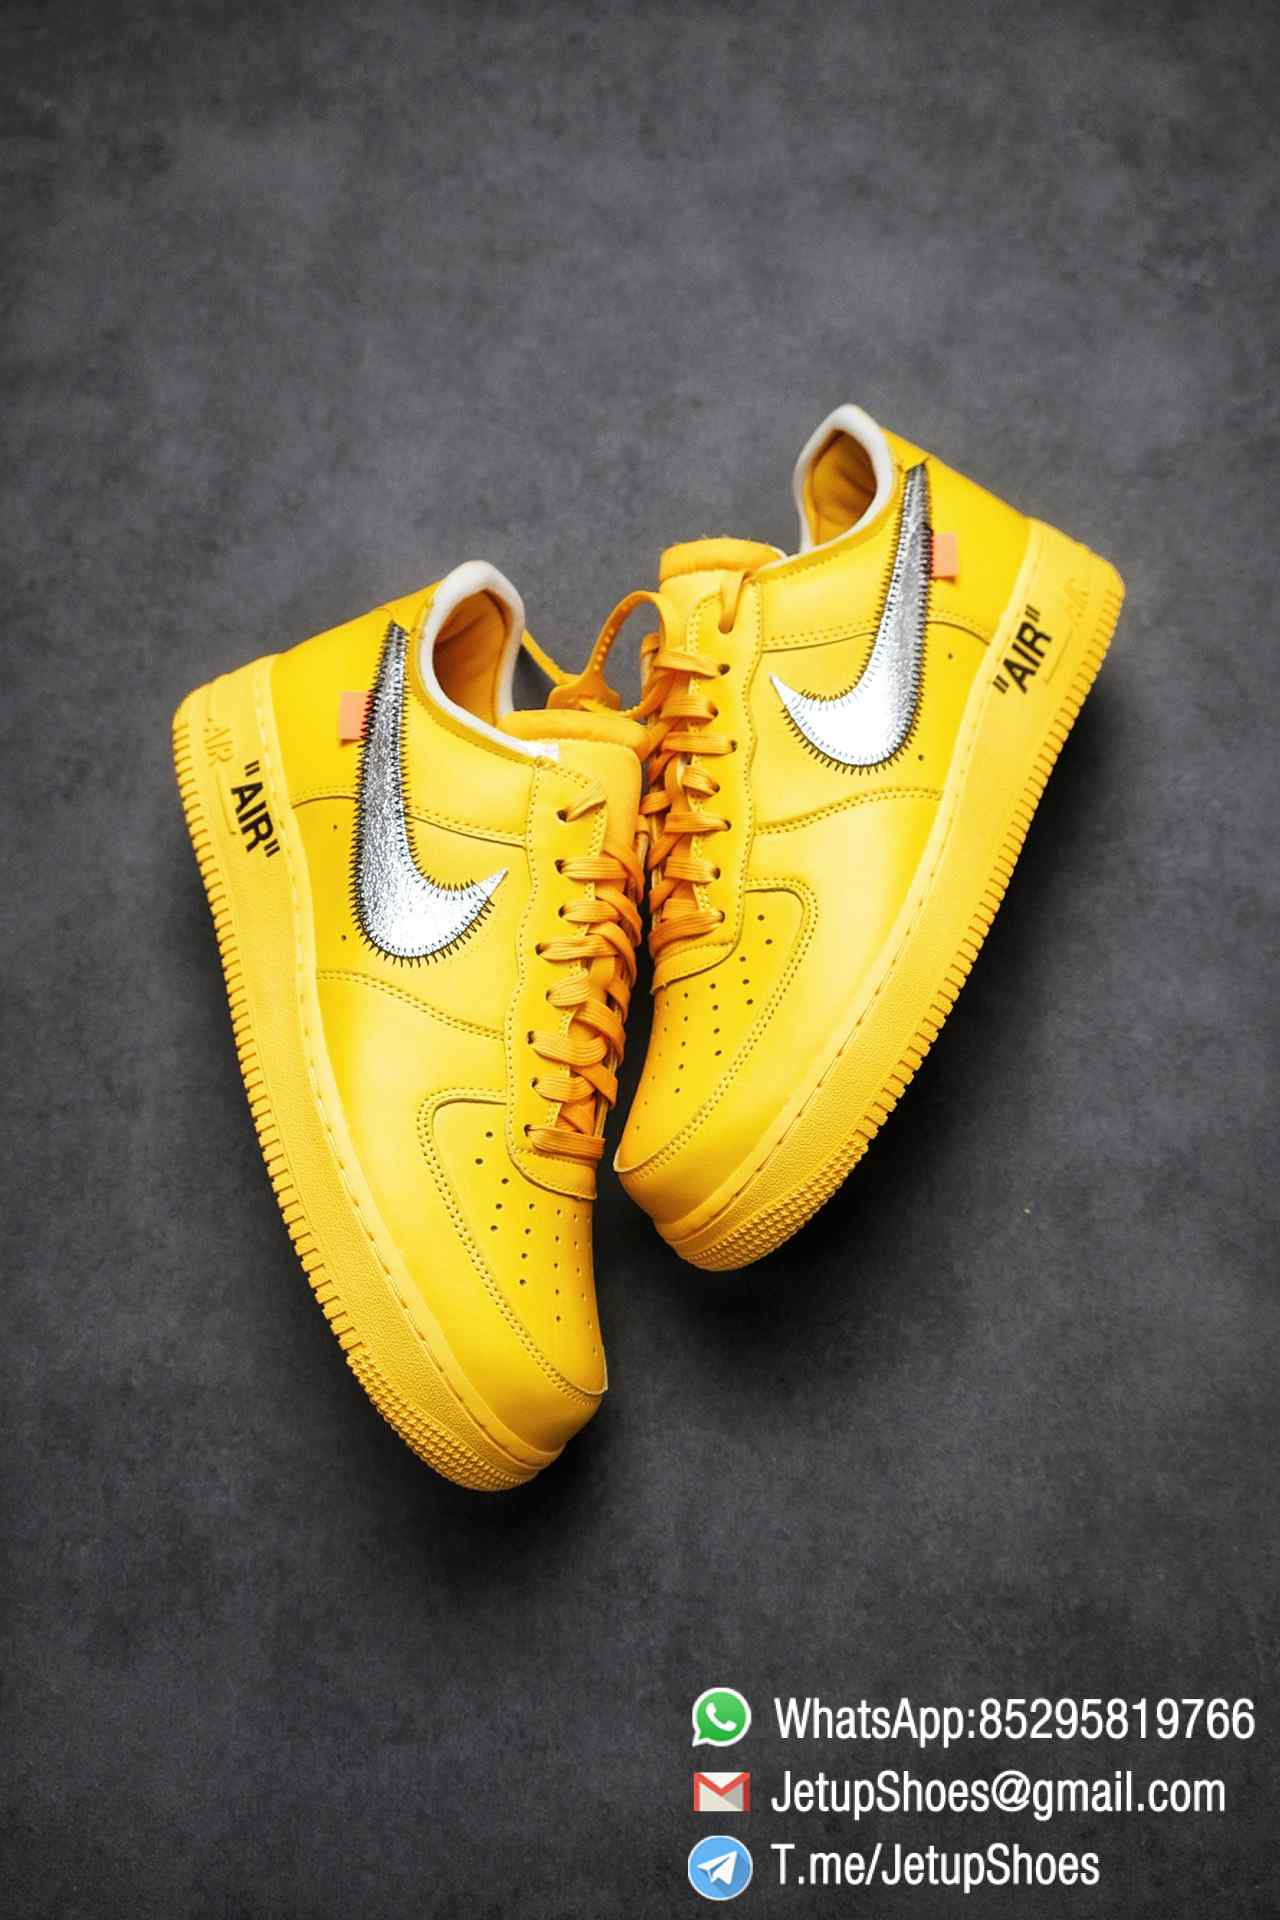 Best Replica Sneakers Off White x Air Force 1 Low University Gold SKU DD1876 700 Top Quality Basketball Shoes 03